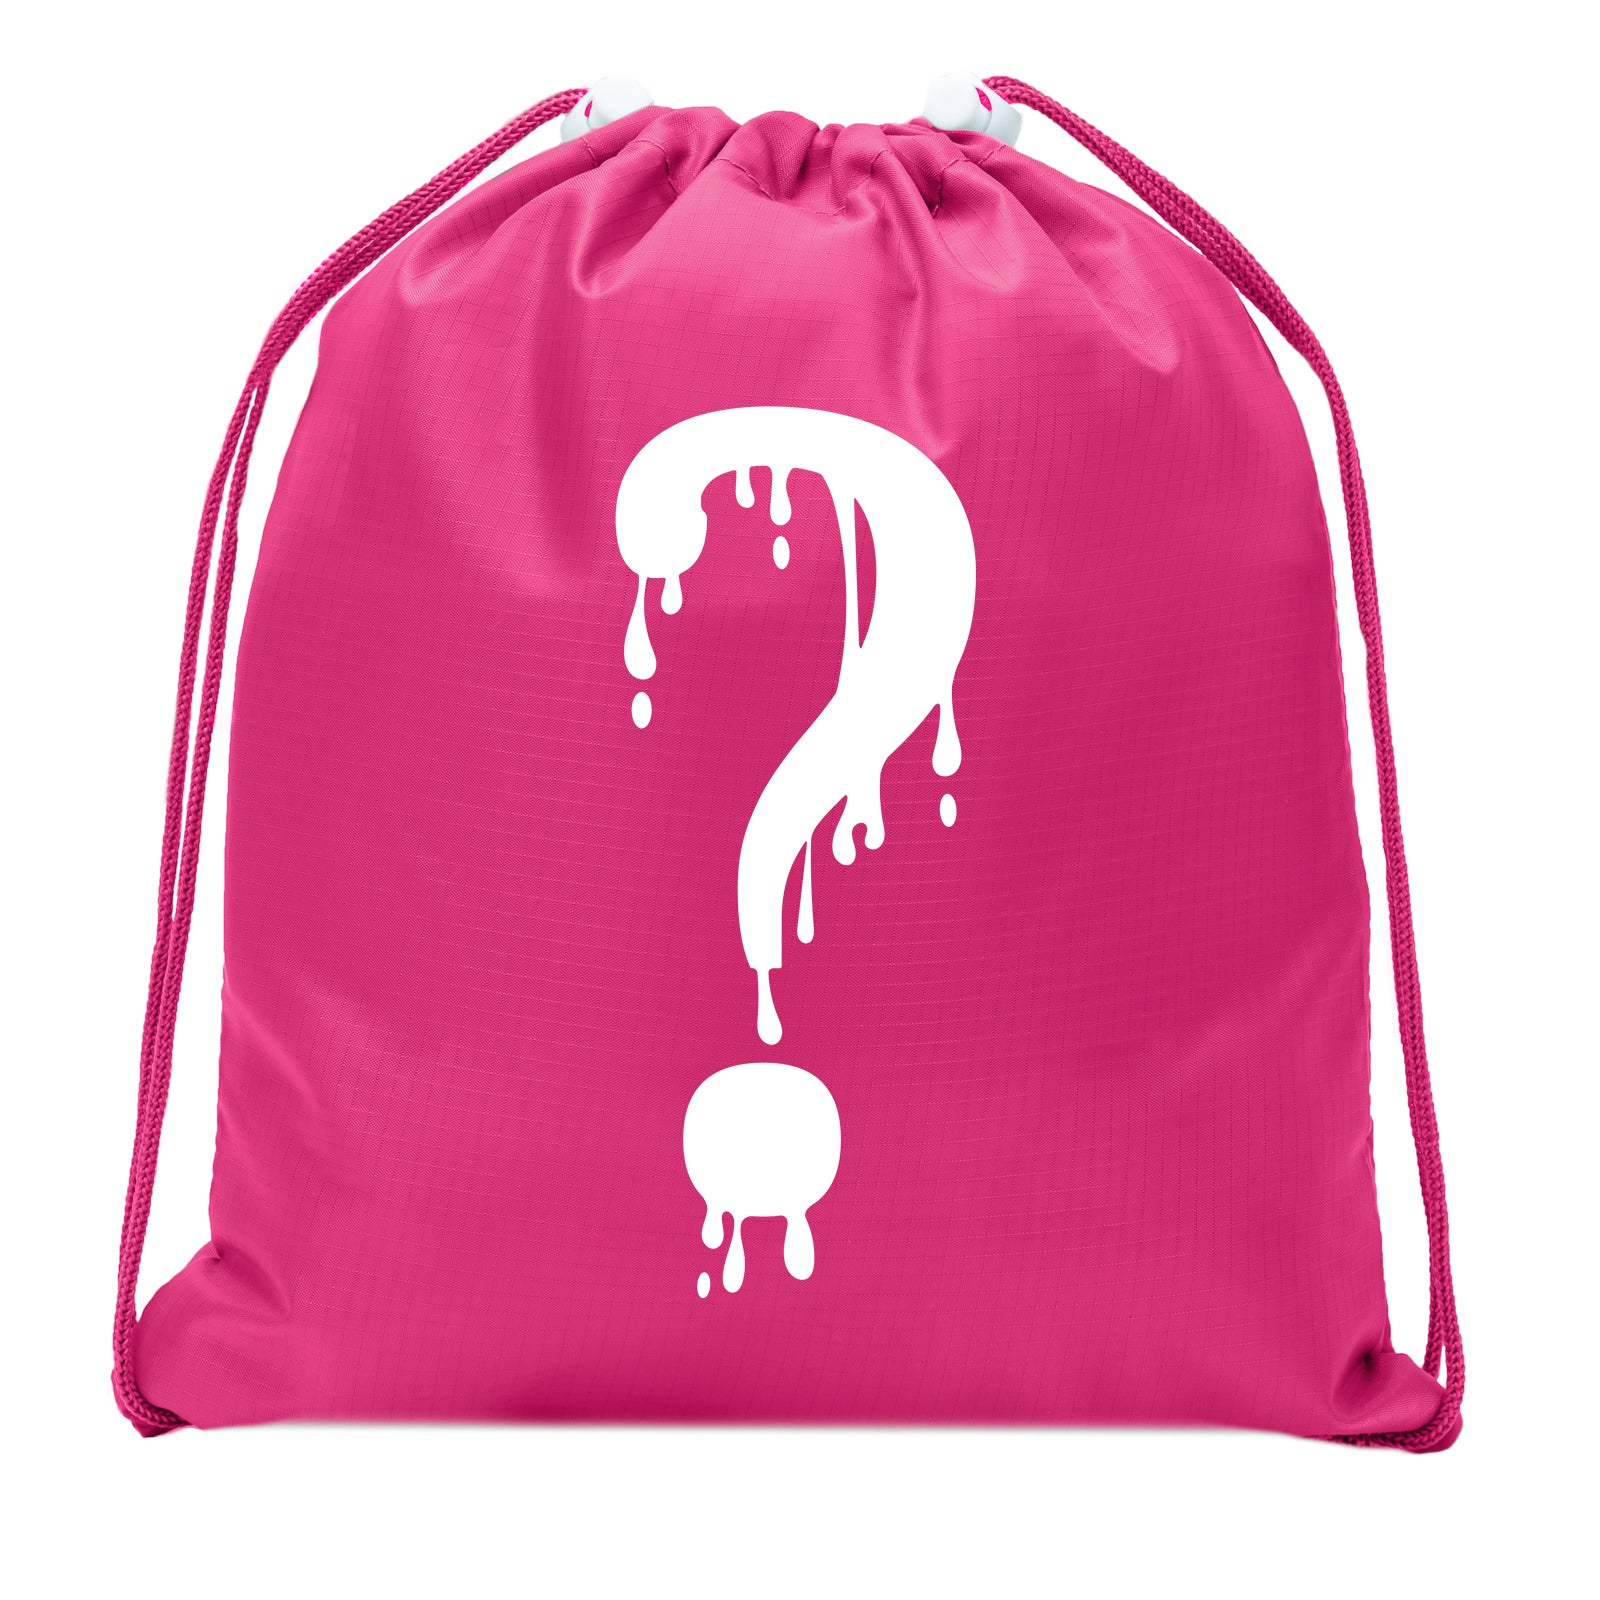 Accessory - Mystery Gift Bags, Mini Blind Bag Party Favors, Surprise Drawstring Goody Bags - Drippy